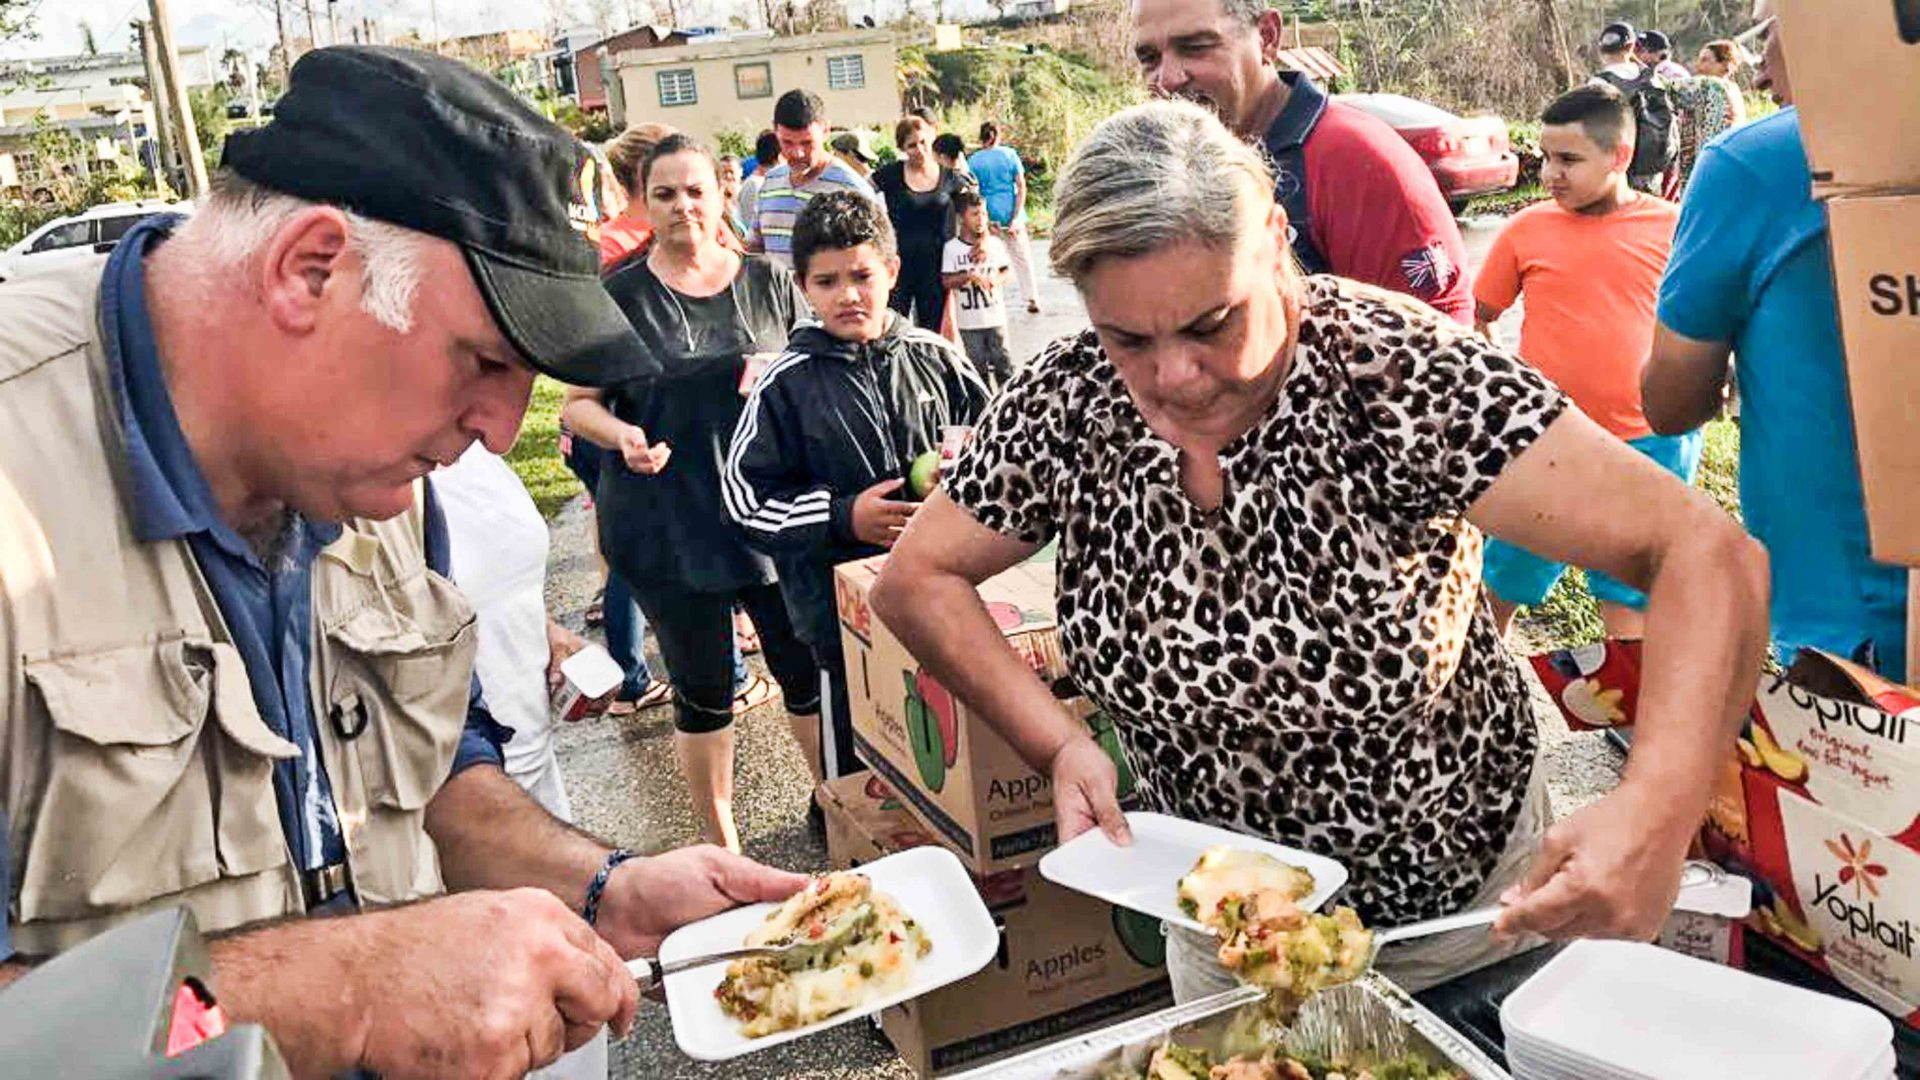 Chef José Andrés serves over one million meals in Puerto Rico